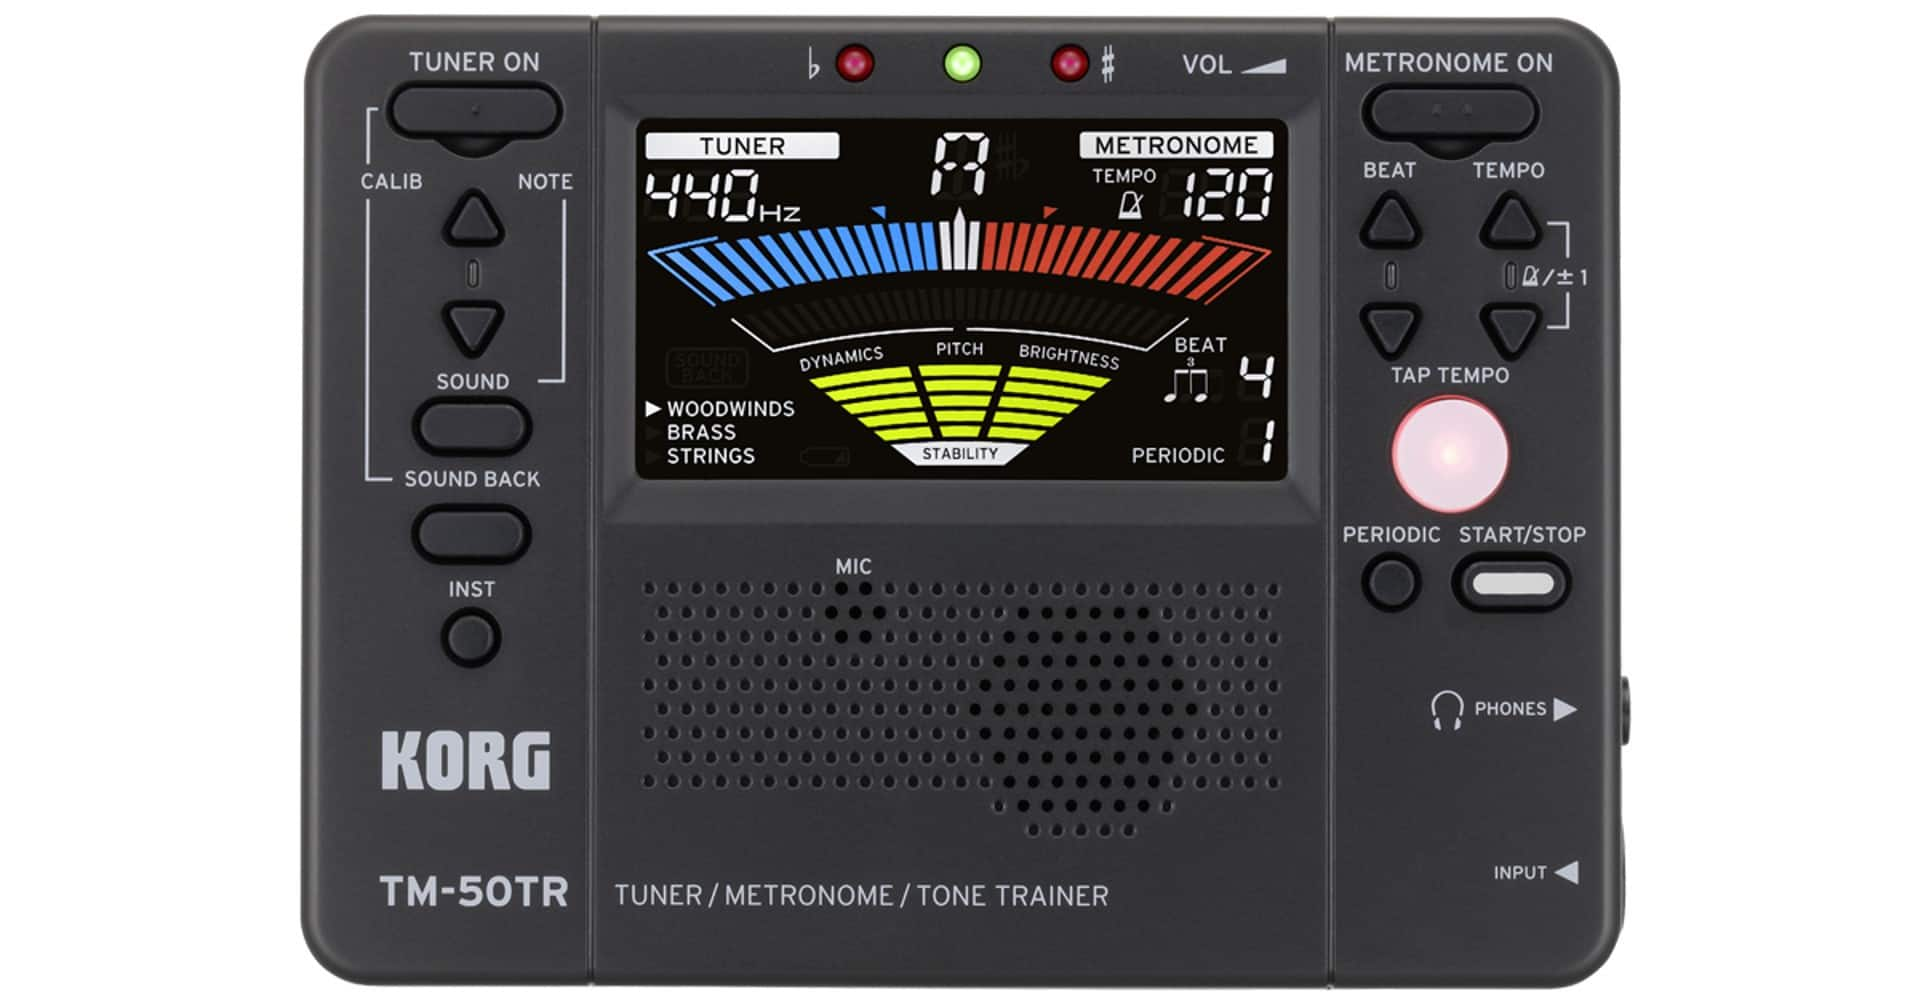 H And S Tuner >> Korg Tm50tr Tone Trainer Metronome Tuner 40 Free S H Slickdeals Net